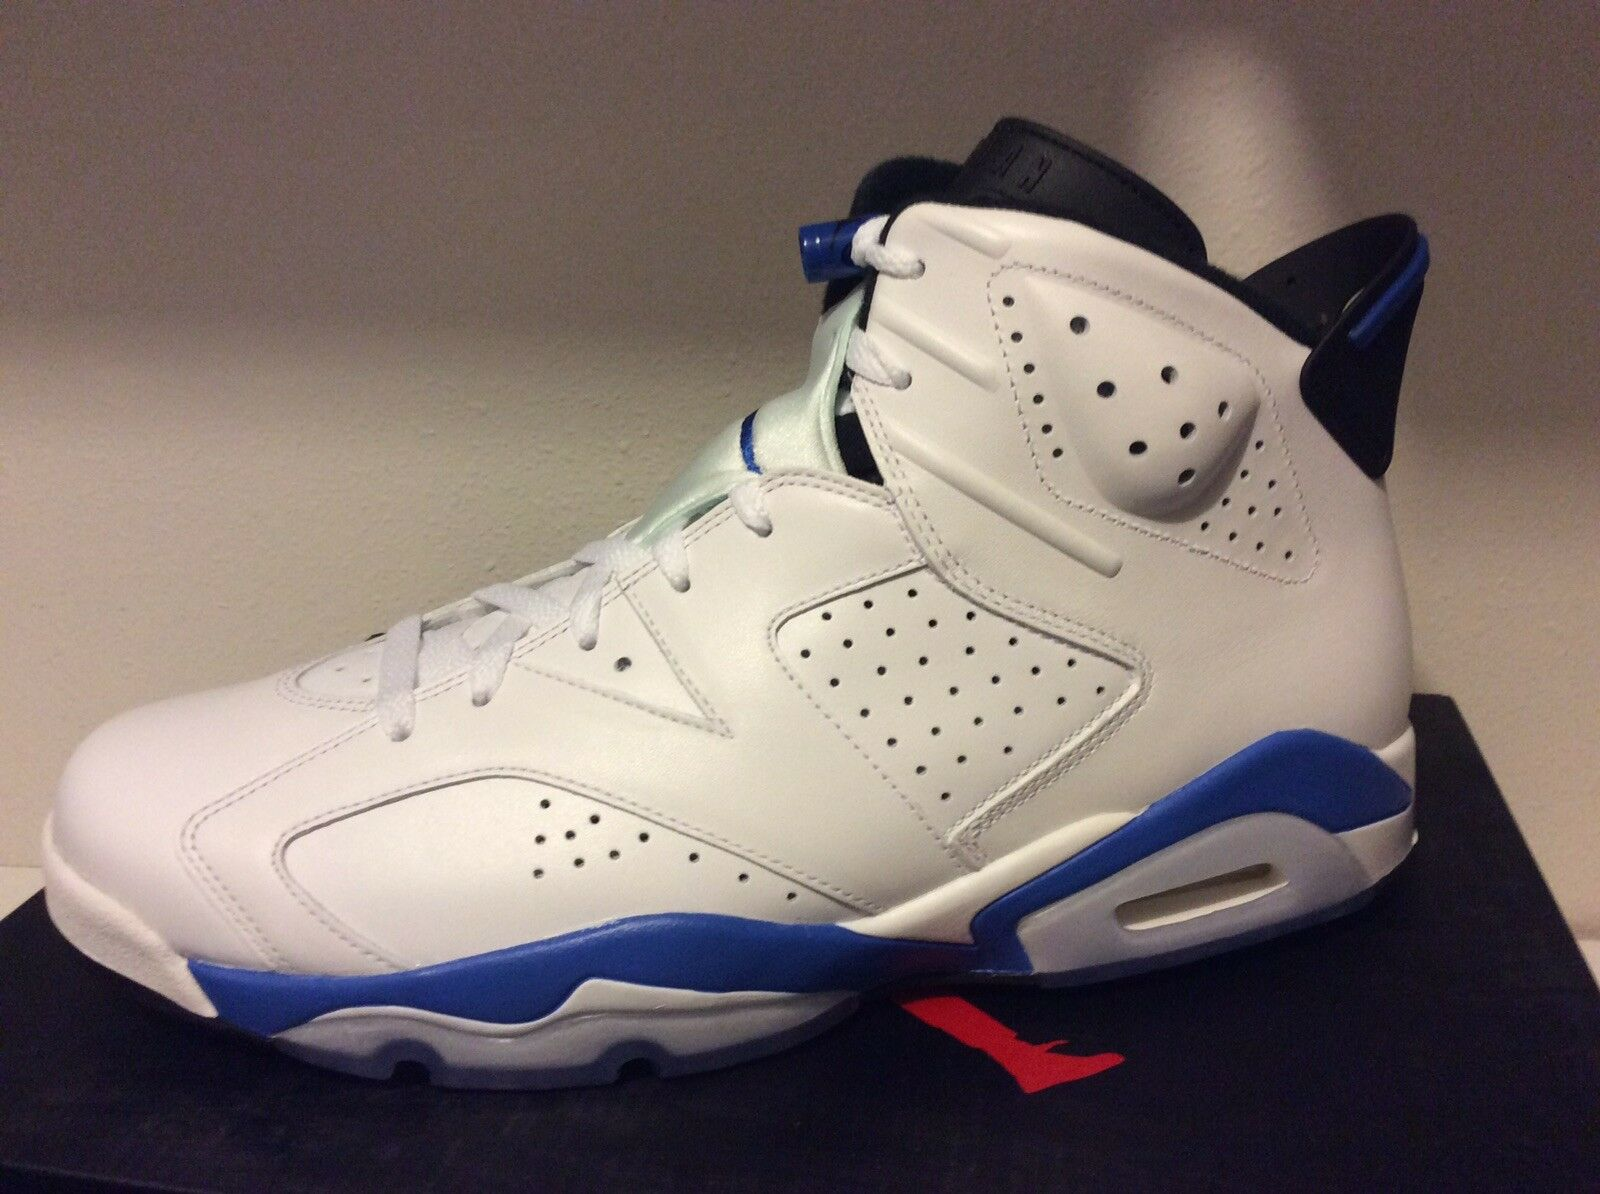 Nike Air Jordan Jordan Jordan Retro 6 White bluee OG everything DS RECEIPT Motorsport 648629